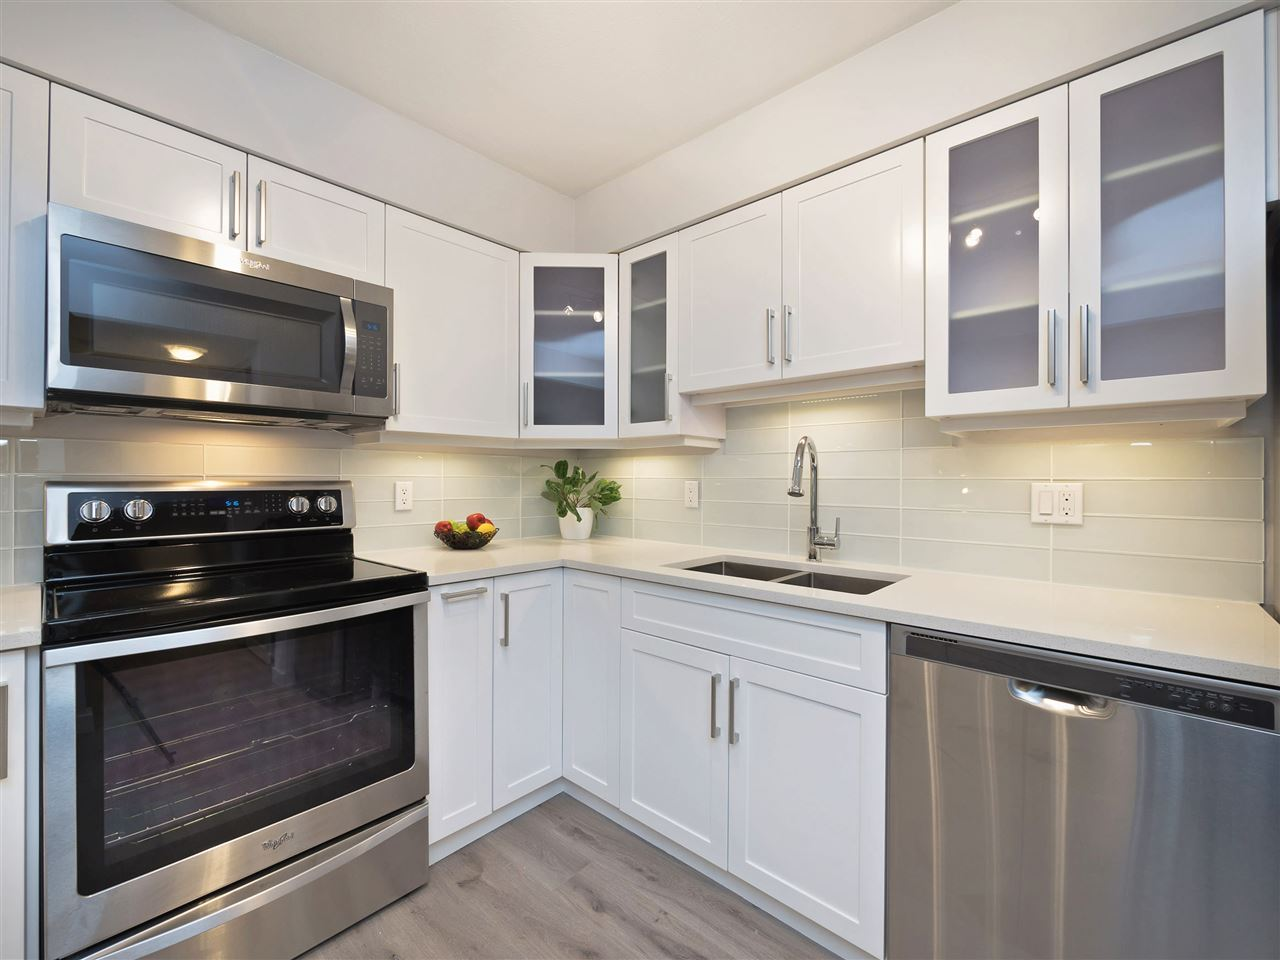 Condo Apartment at 211 1148 WESTWOOD STREET, Unit 211, Coquitlam, British Columbia. Image 3